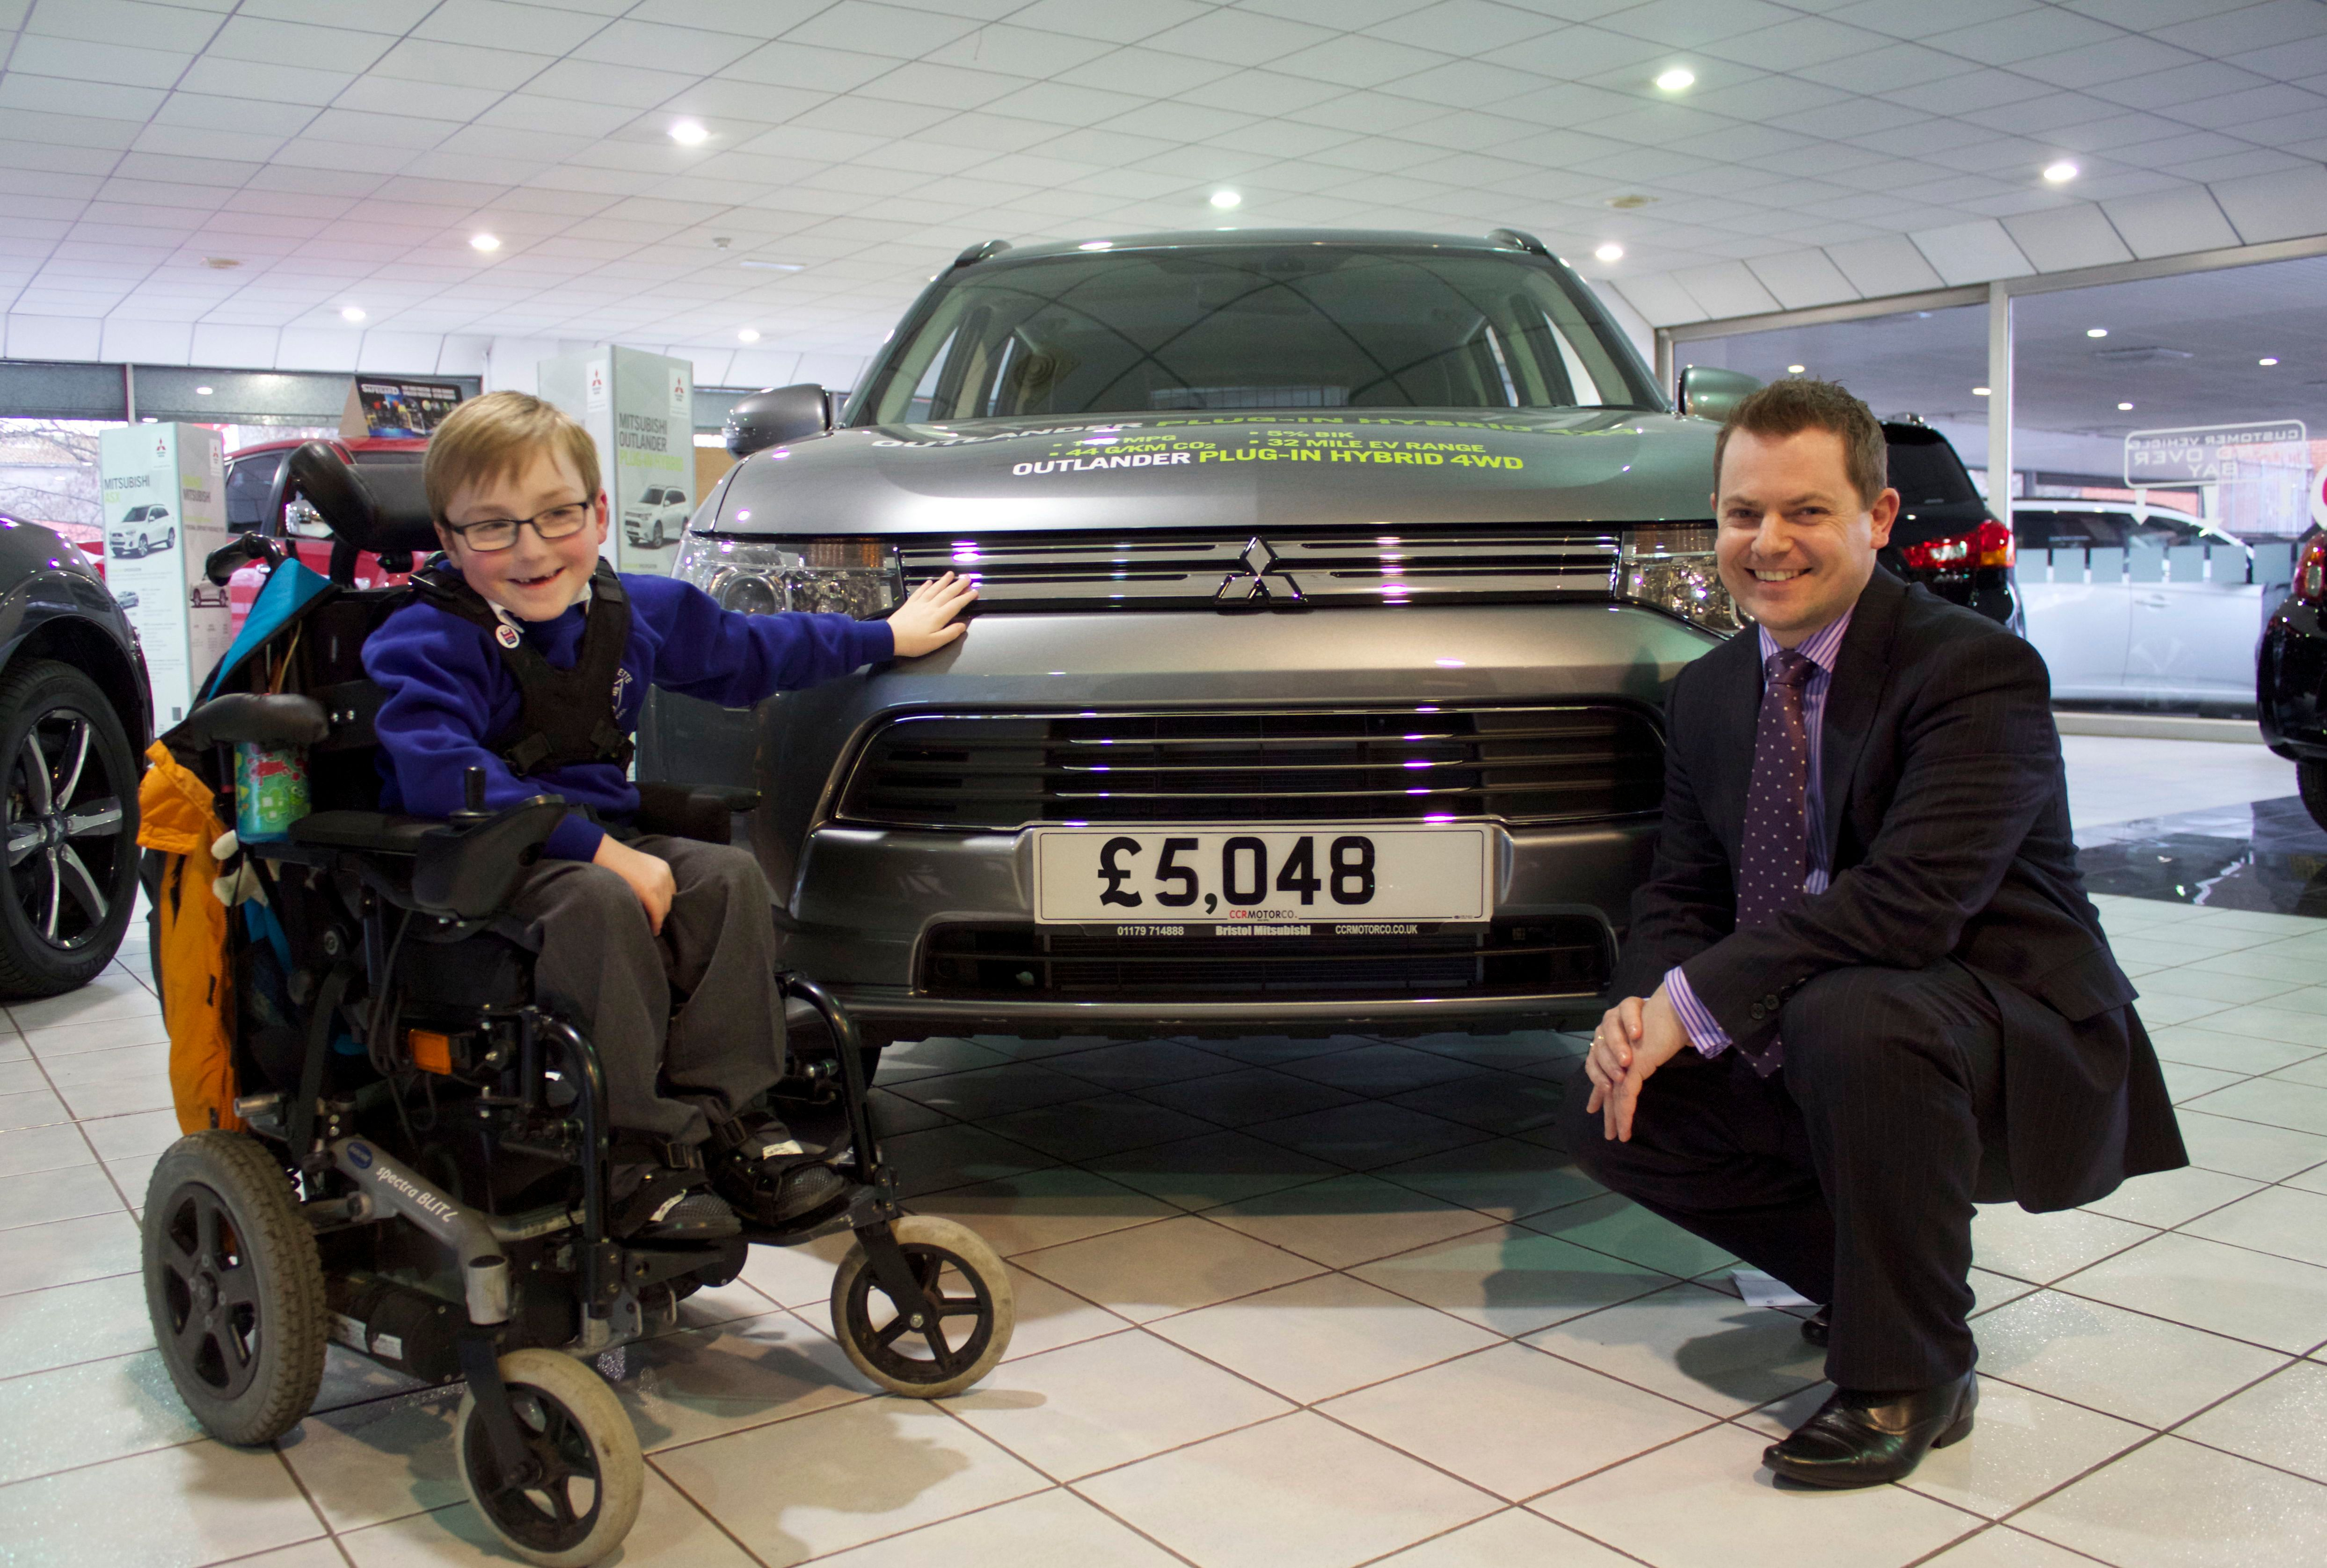 MITSUBISHI DEALERSHIP RAISES THOUSANDS  TO HELP BOY WALK